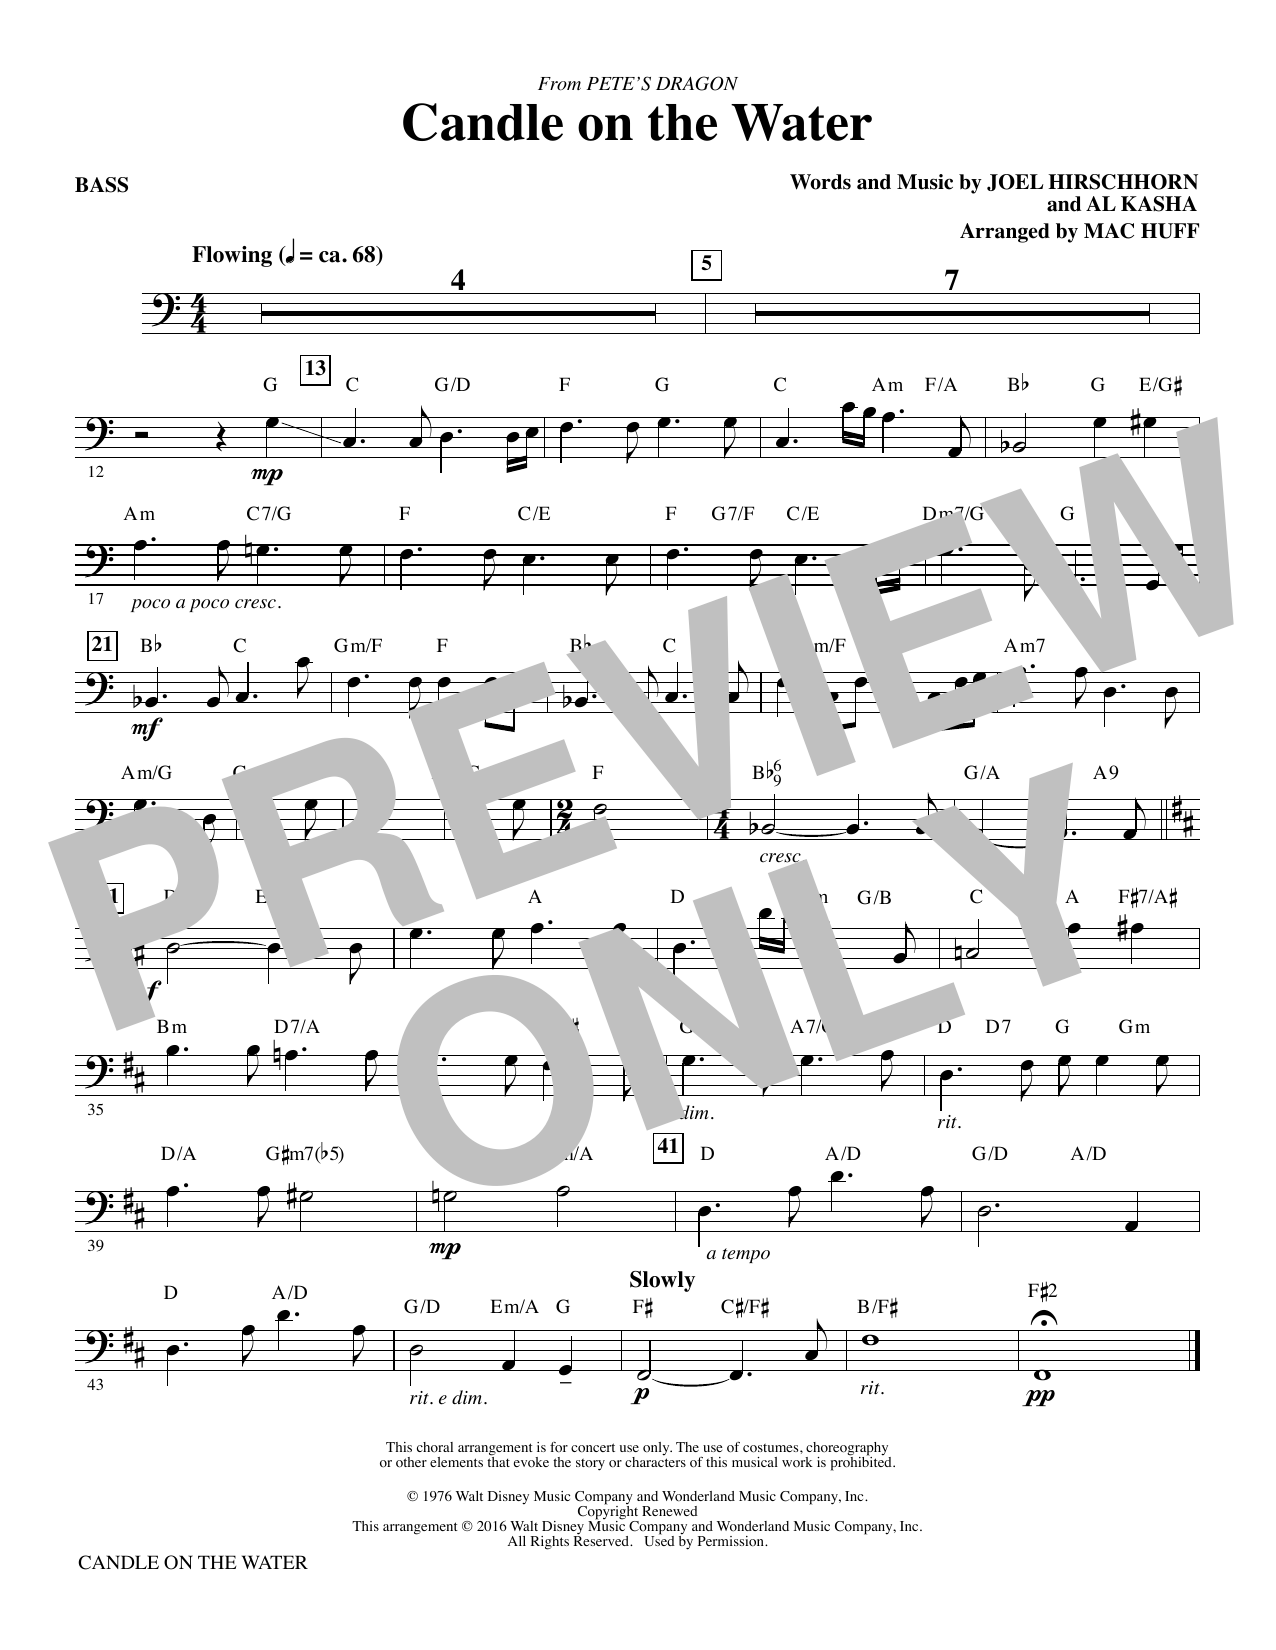 Candle on the Water - Bass Sheet Music